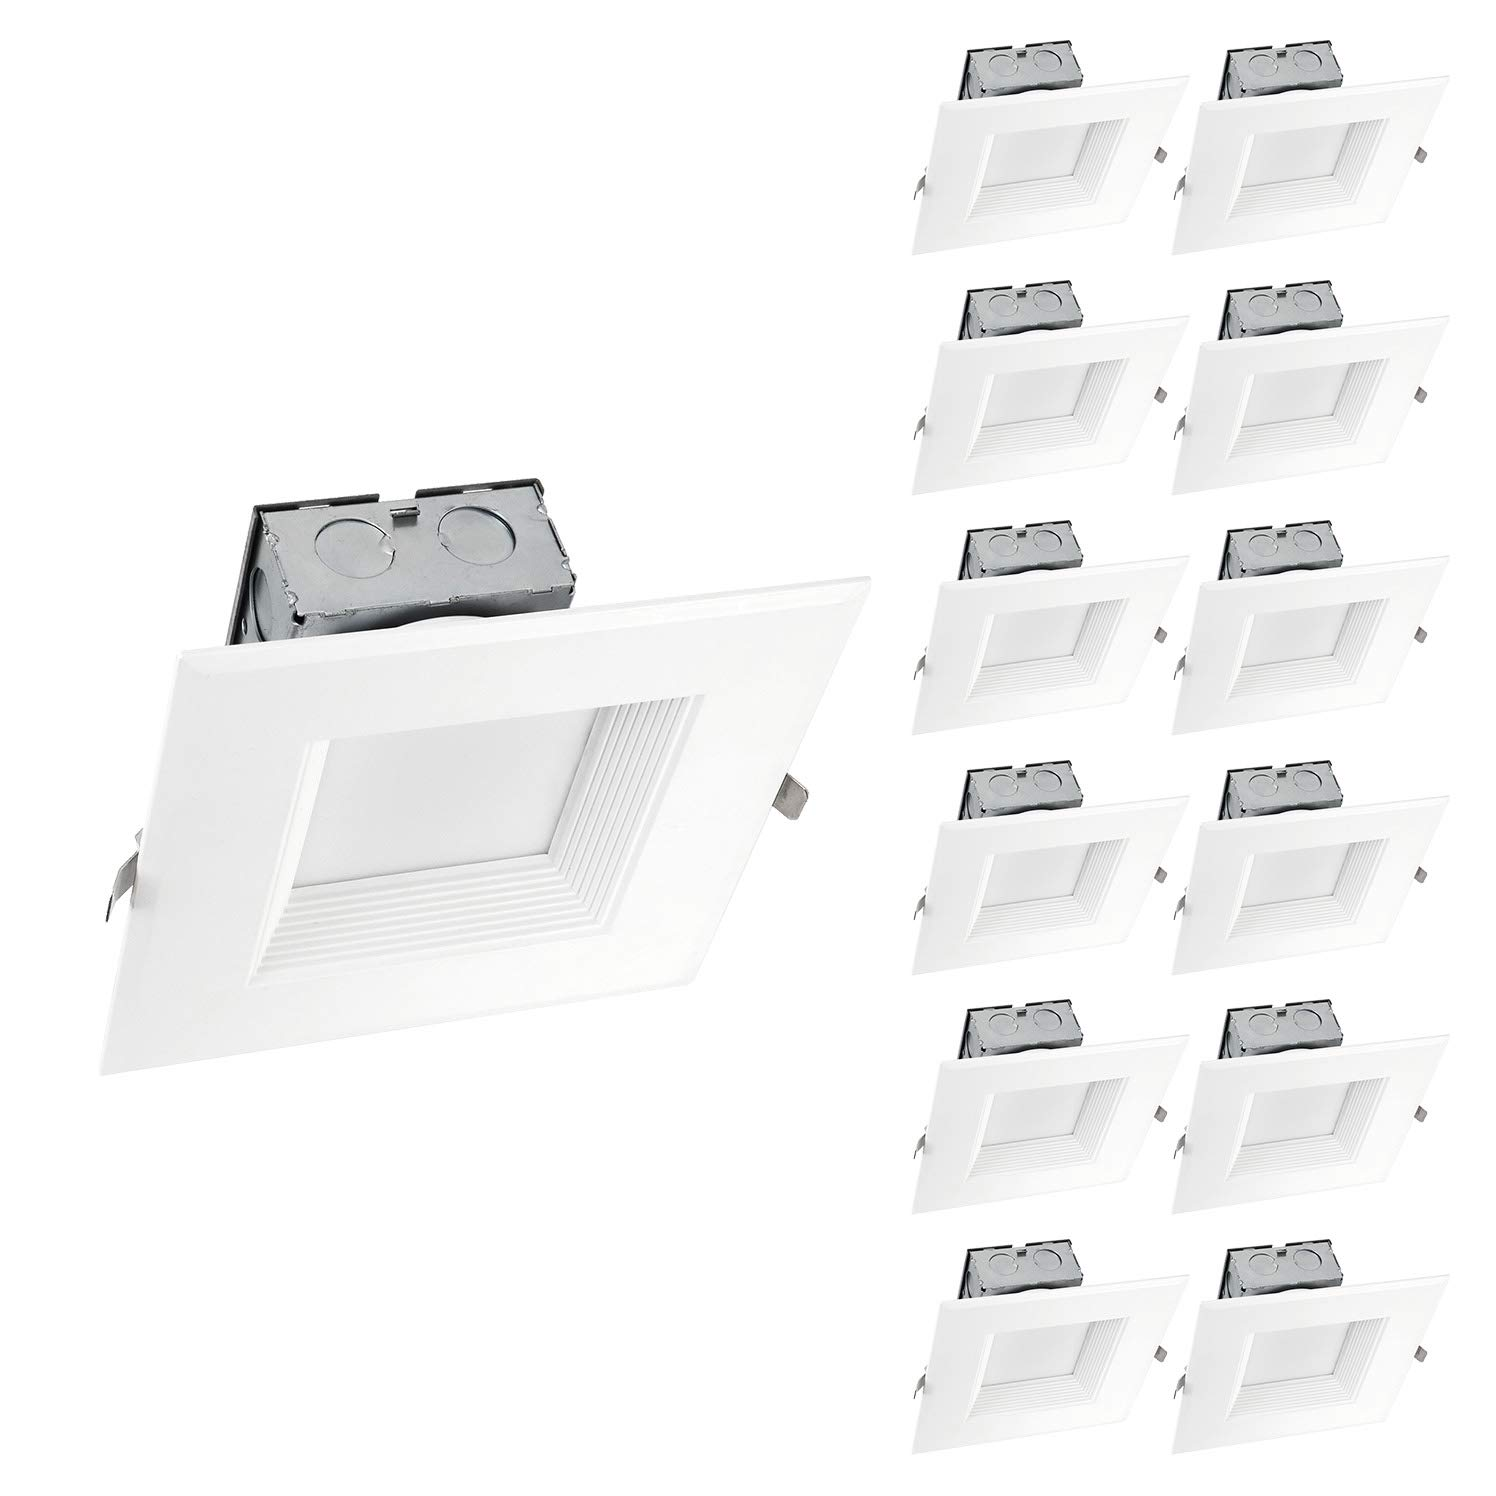 OSTWIN (12 Pack) 6 inch IC Rated Square LED Ceiling Recessed Downlight Kit With Junction box, Baffle Trim, Dimmable, 15W (120Watt Repl) 5000K Daylight, 1000Lm. No Can Needed ETL and Energy Star Listed